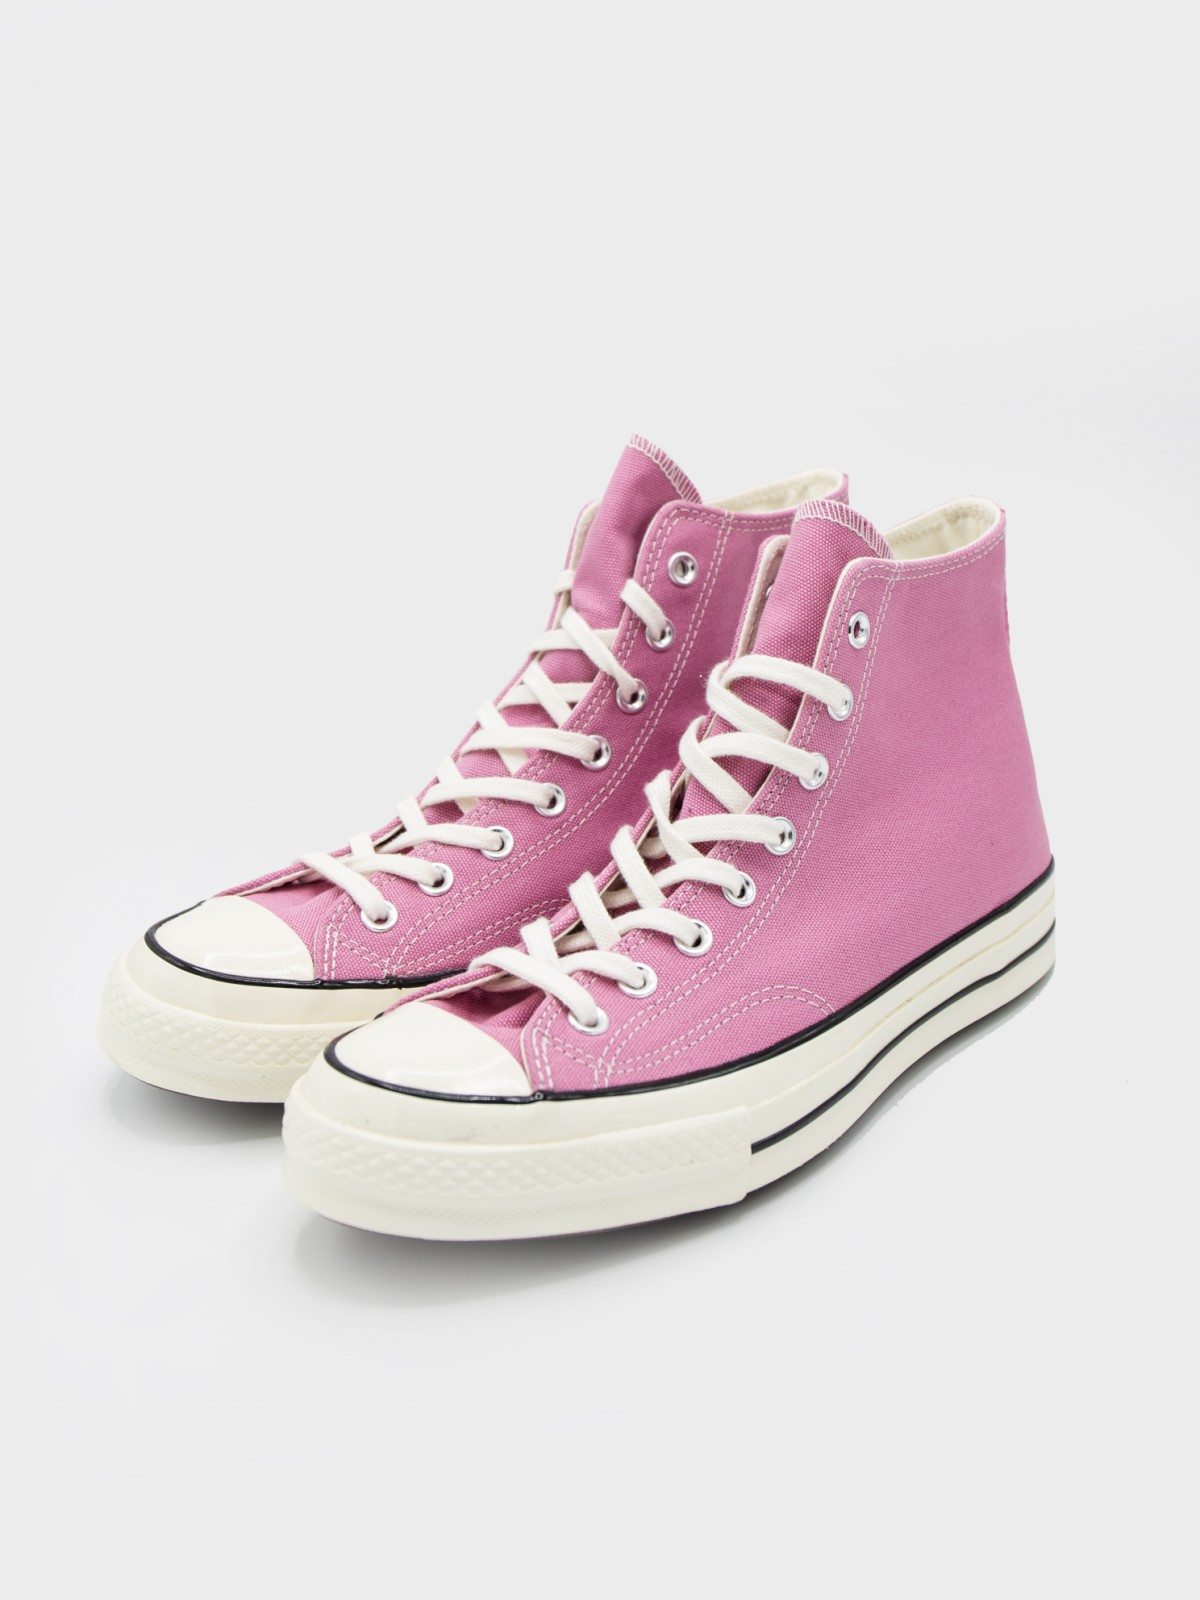 Converse Chuck Taylor High All Star '70 in Magic Flamingo